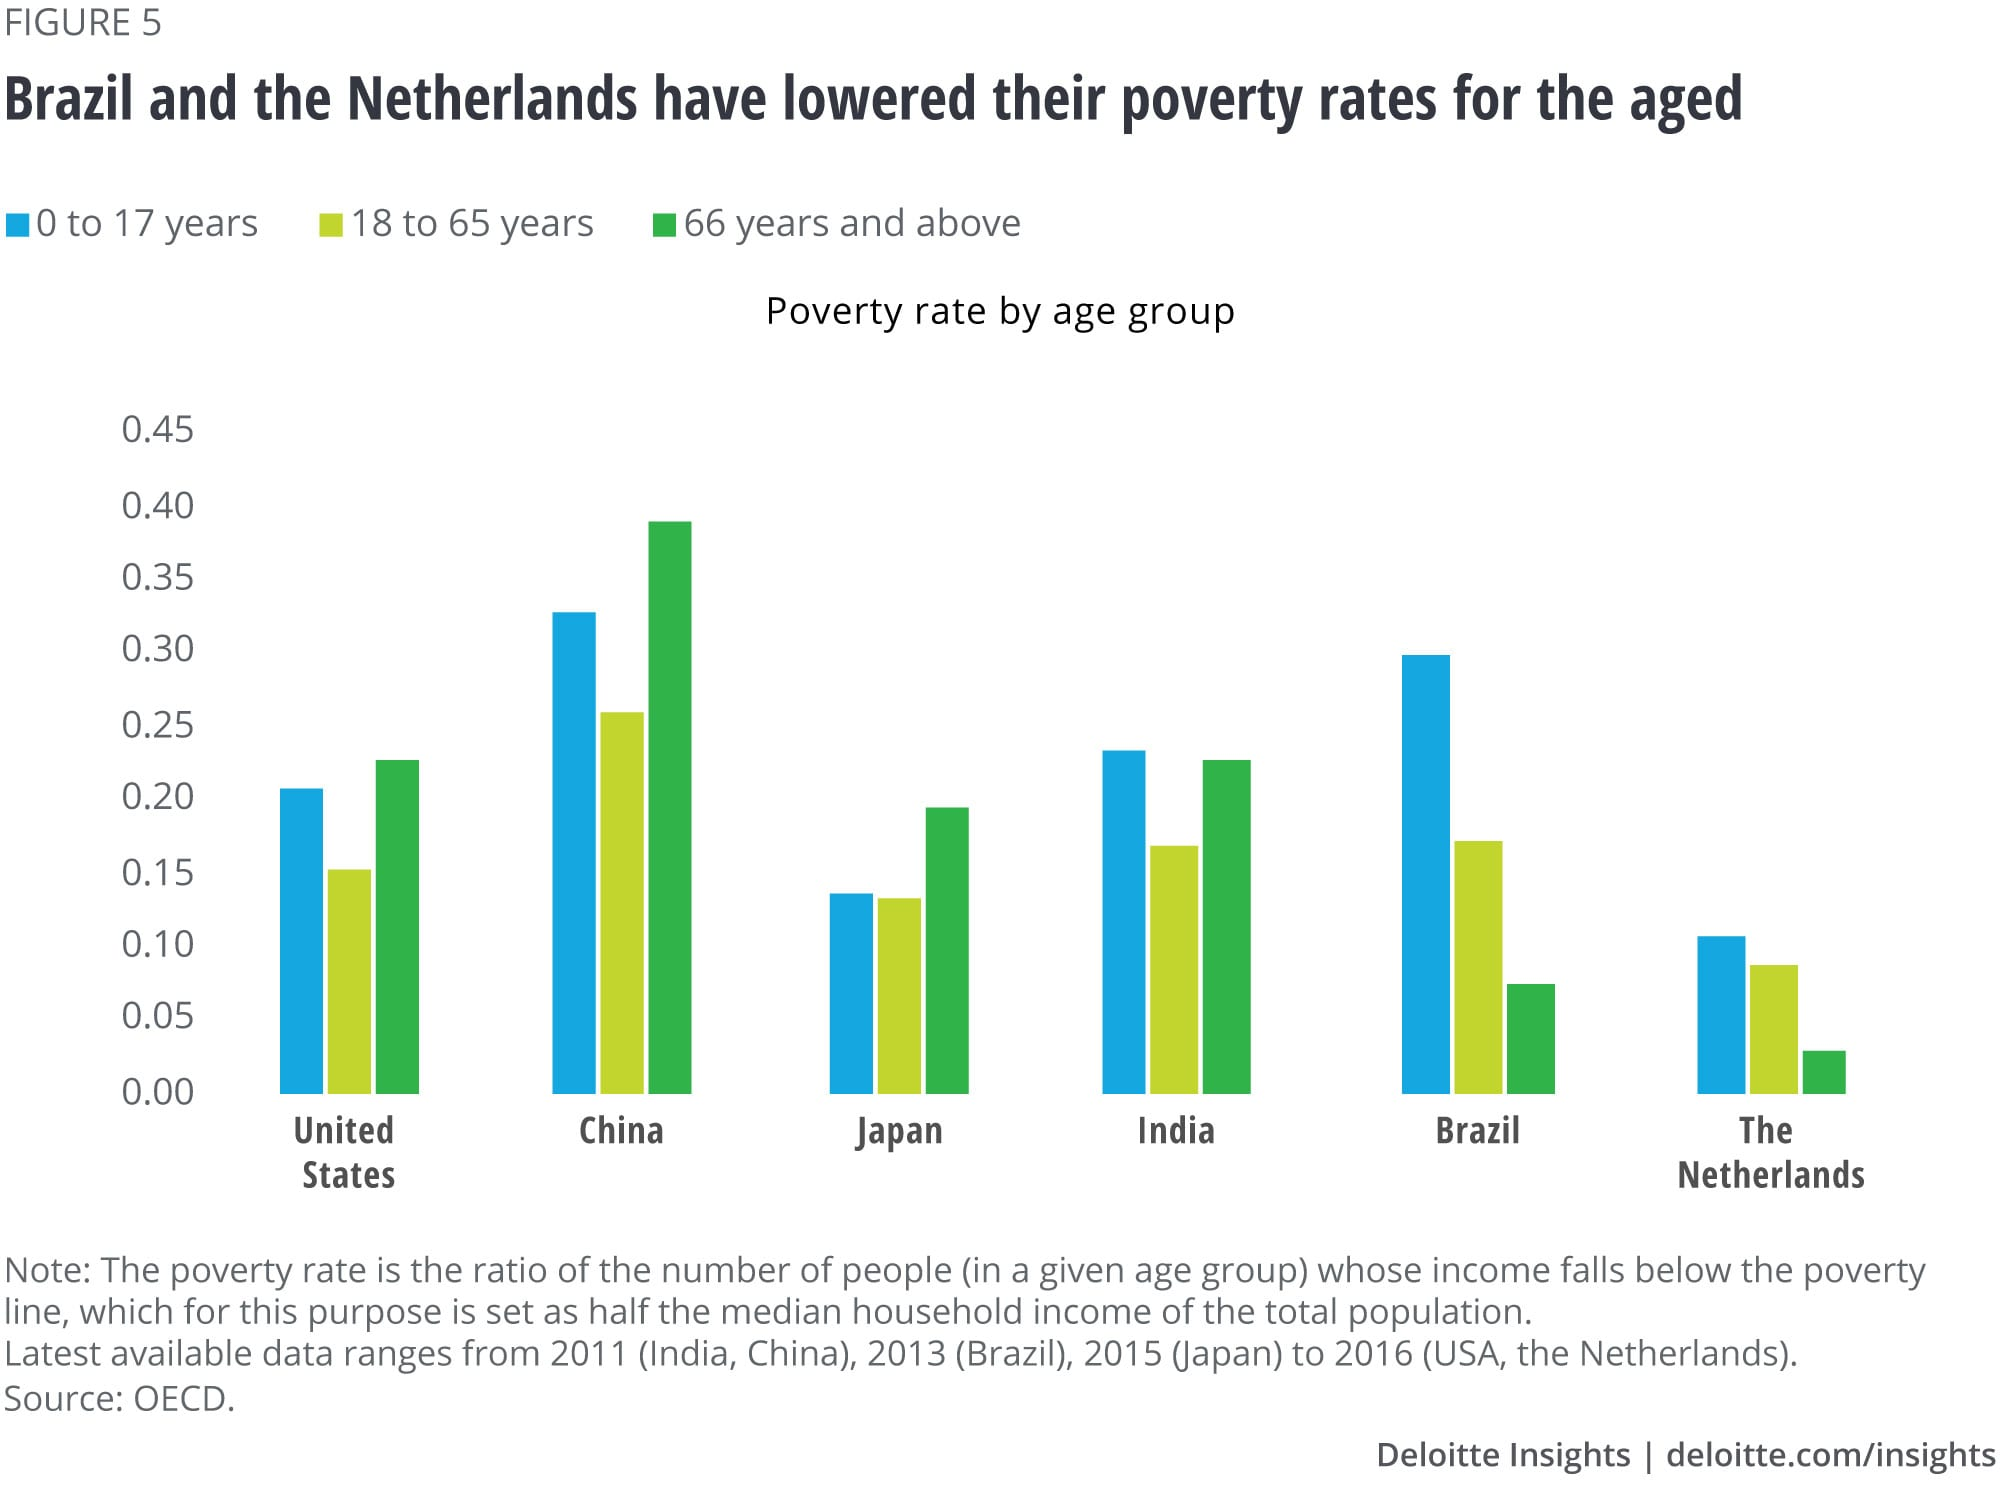 Brazil and the Netherlands have lowered their poverty rates for the aged